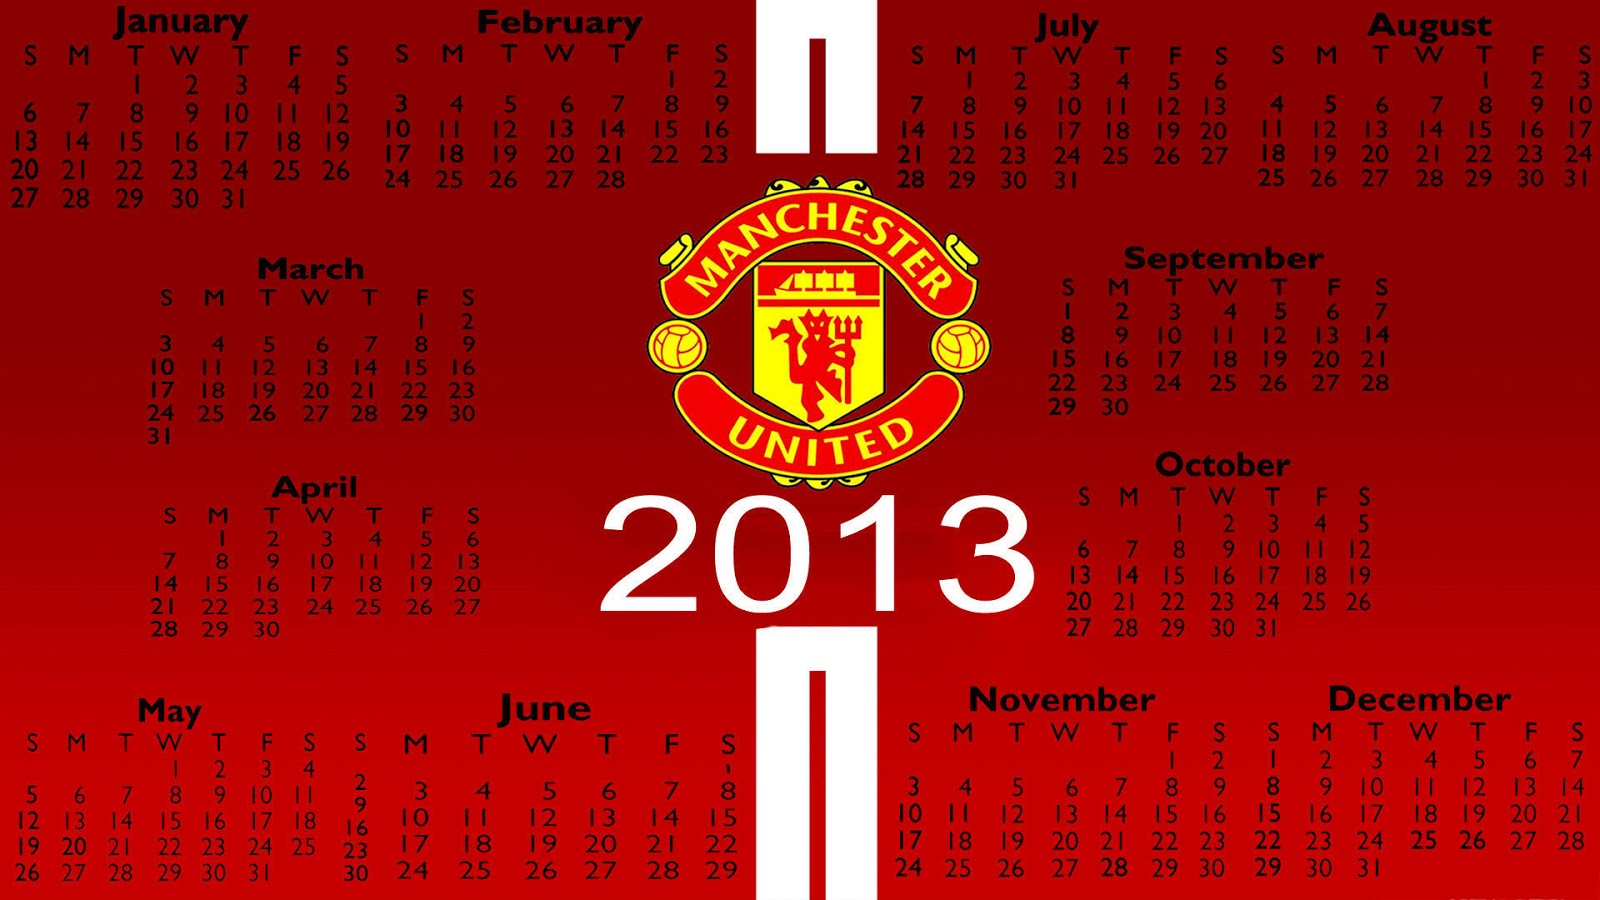 Manchester united 2013 wallpapers 2013 hd all wallpaper gallery manchester united 2013 wallpapers 2013 hd voltagebd Gallery